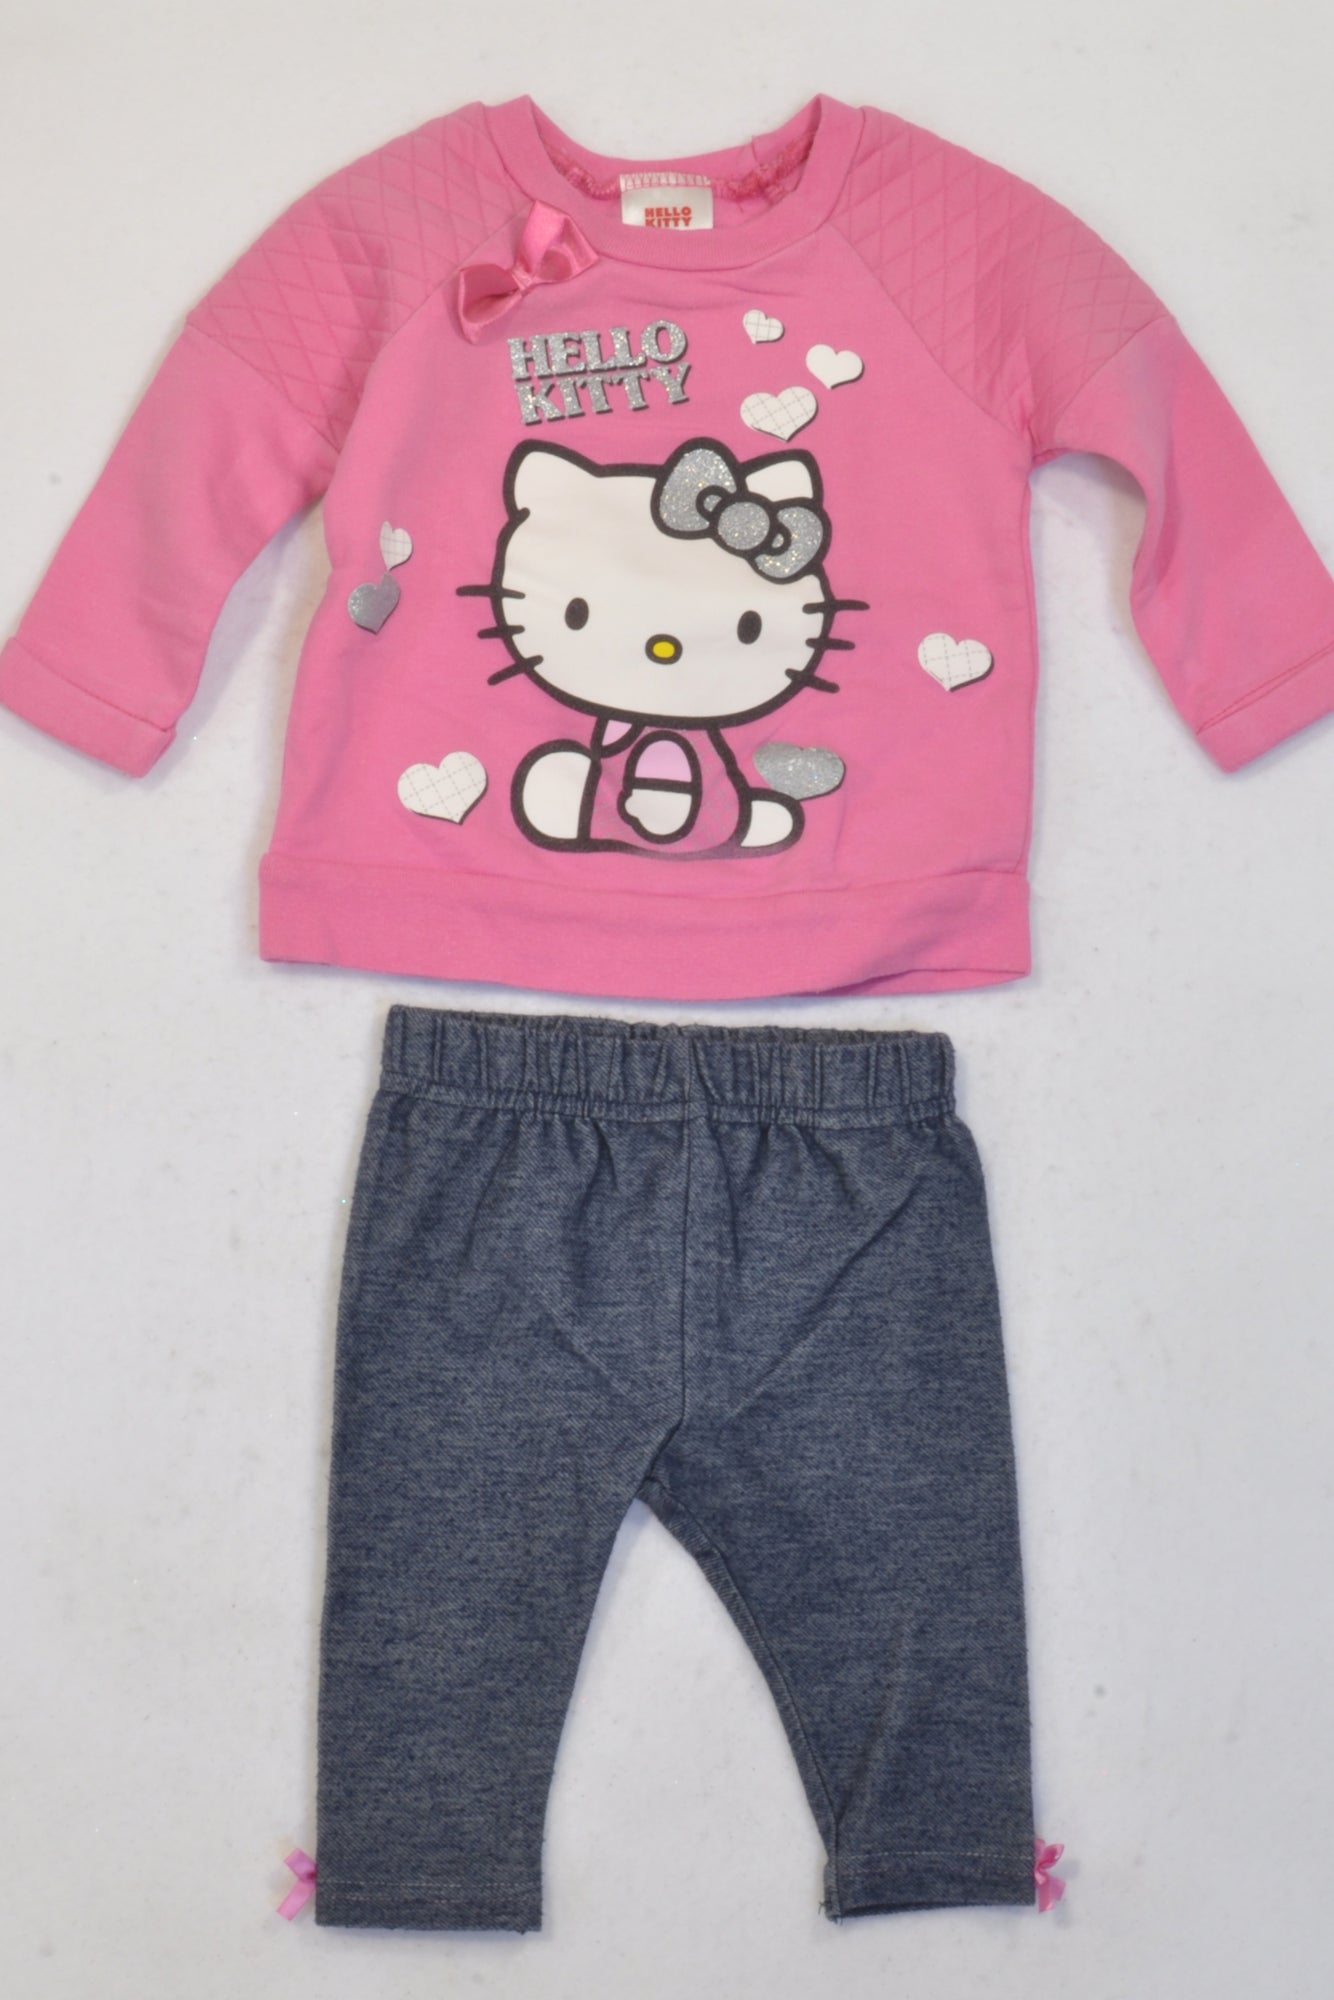 bb0801af0e0b Edgars Pink Hello Kitty Hearts Top & Jeggings Outfit Girls 3-6 months –  Once More